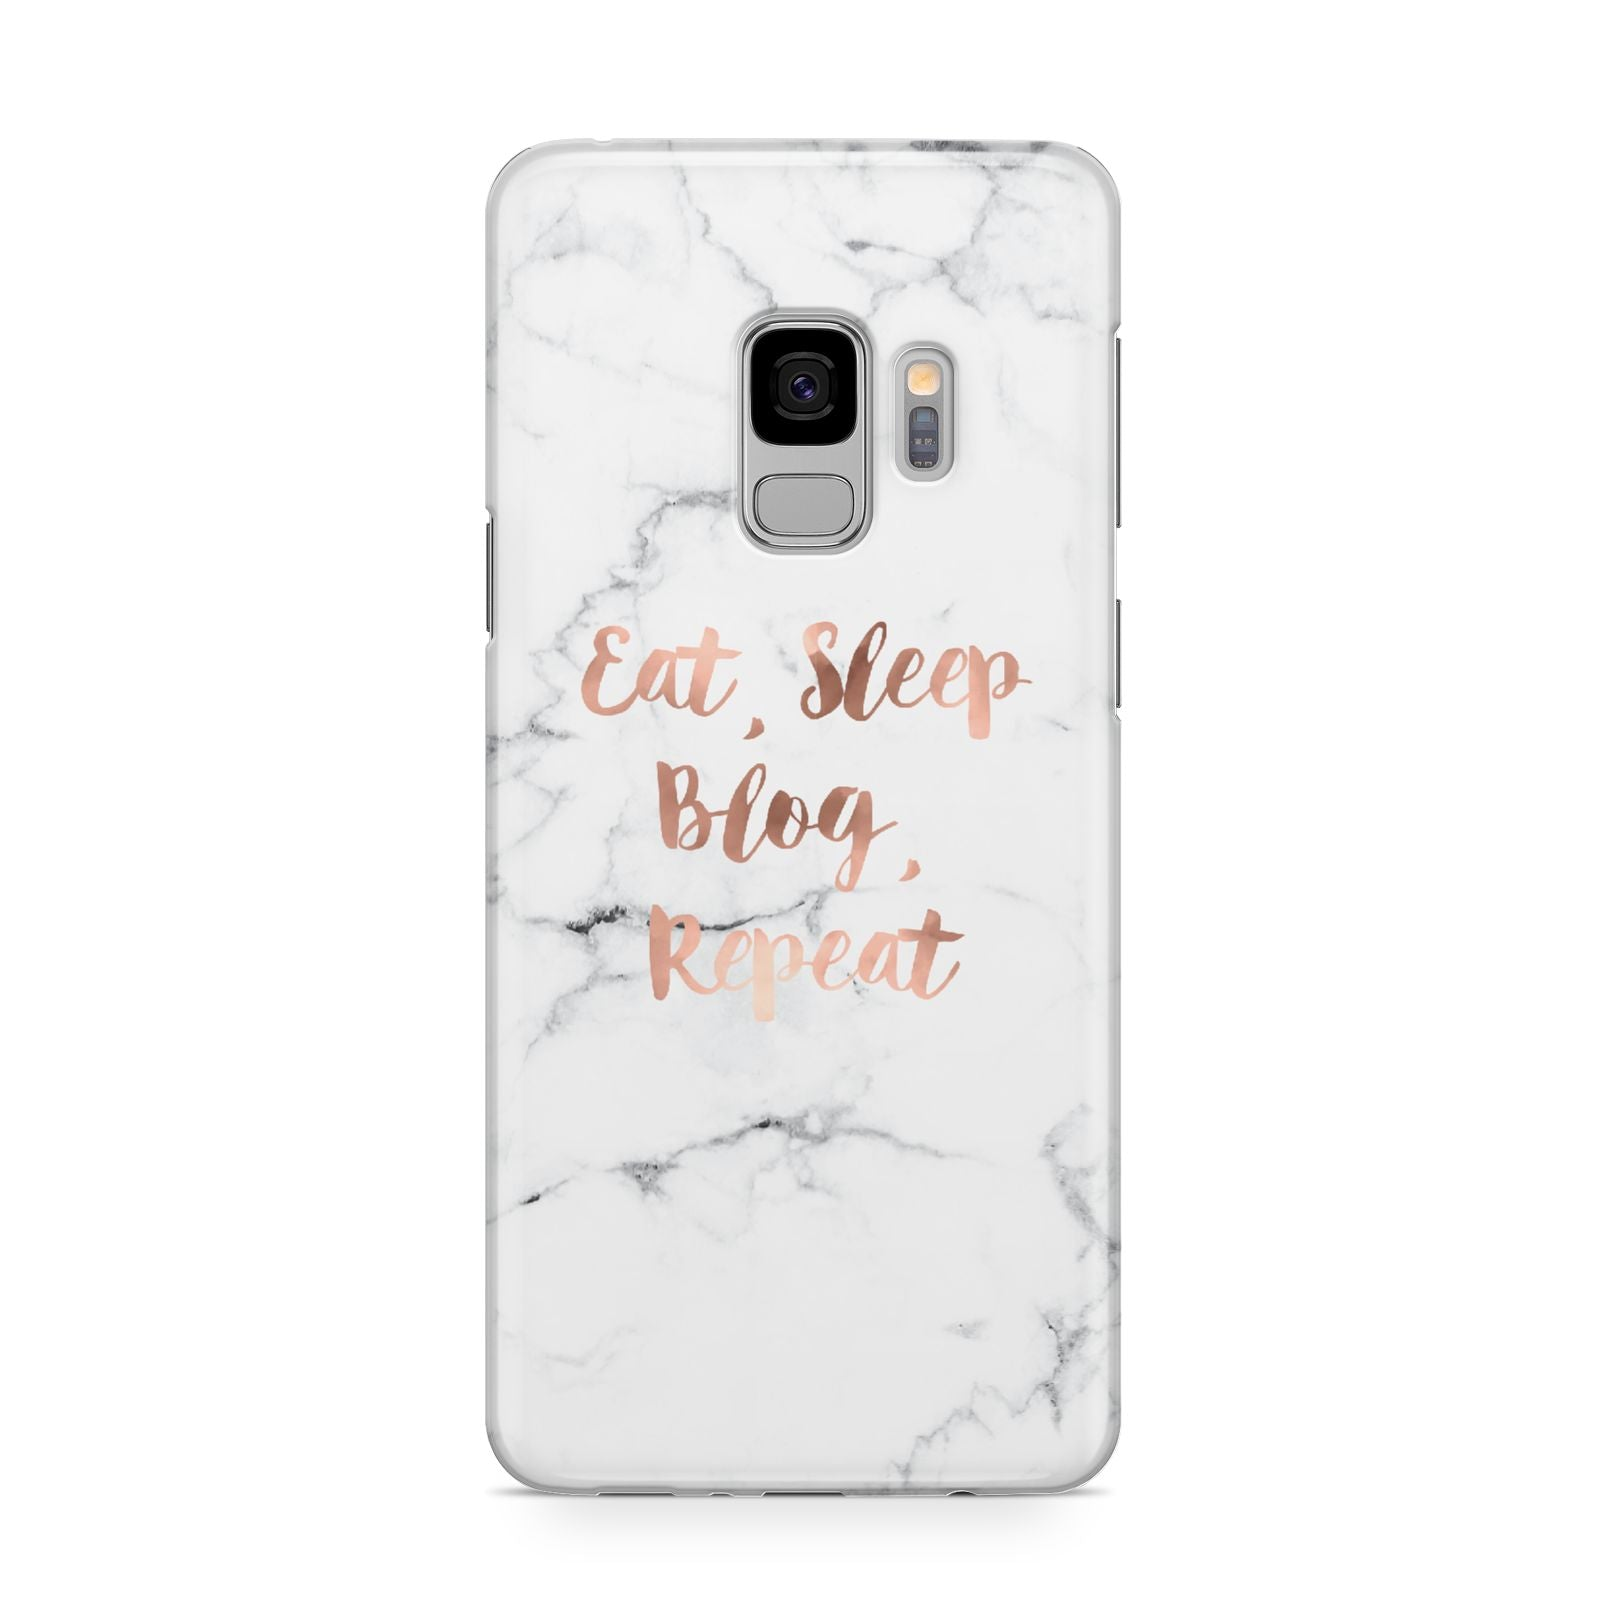 Eat Sleep Blog Repeat Marble Effect Samsung Galaxy S9 Case